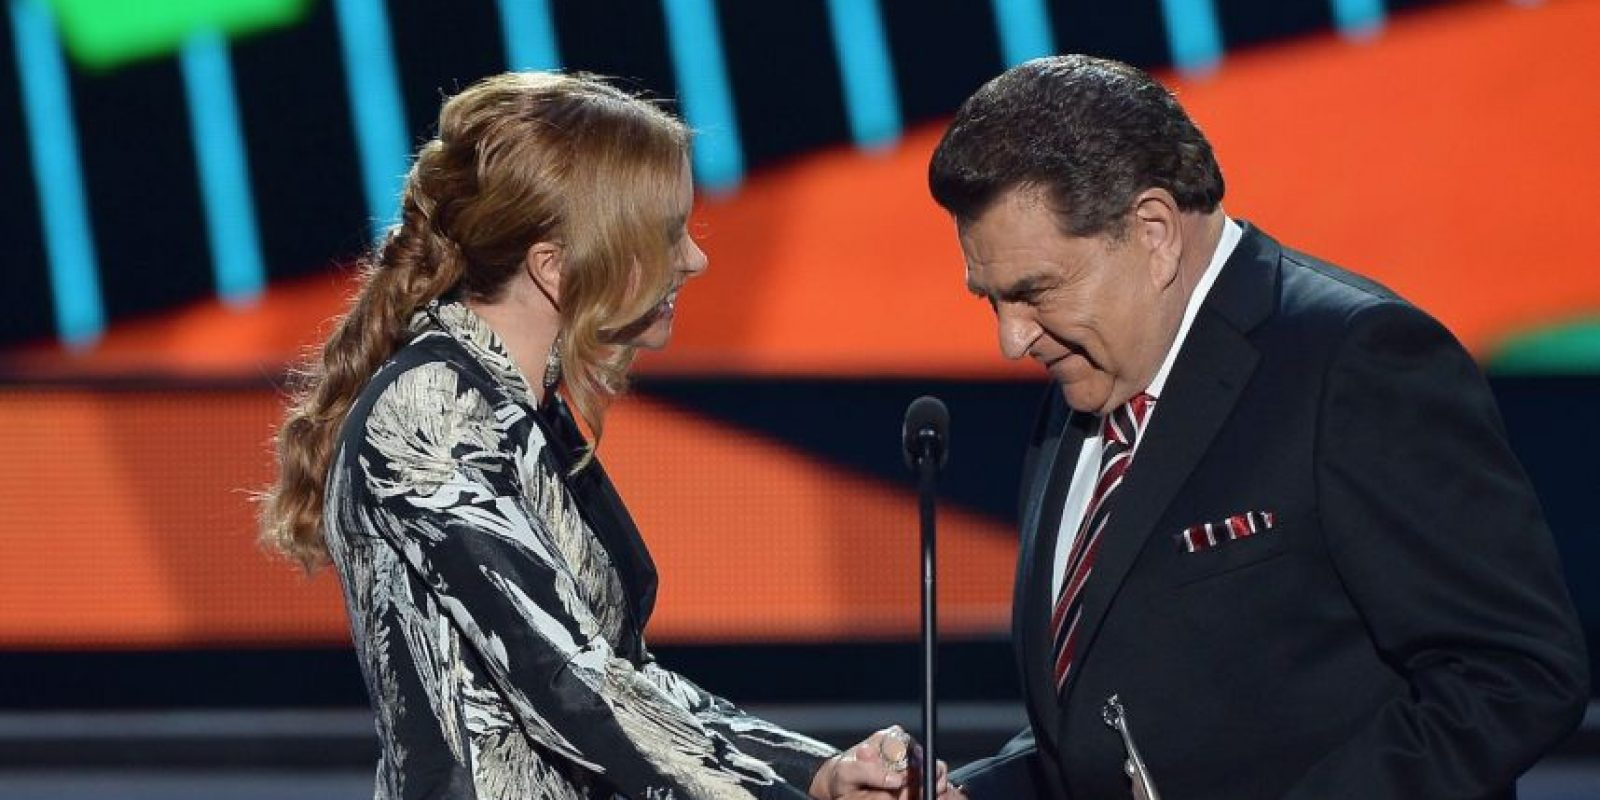 """Don Francisco recibió el premio ""Gigante de Gigantes"" Foto: Getty Images"